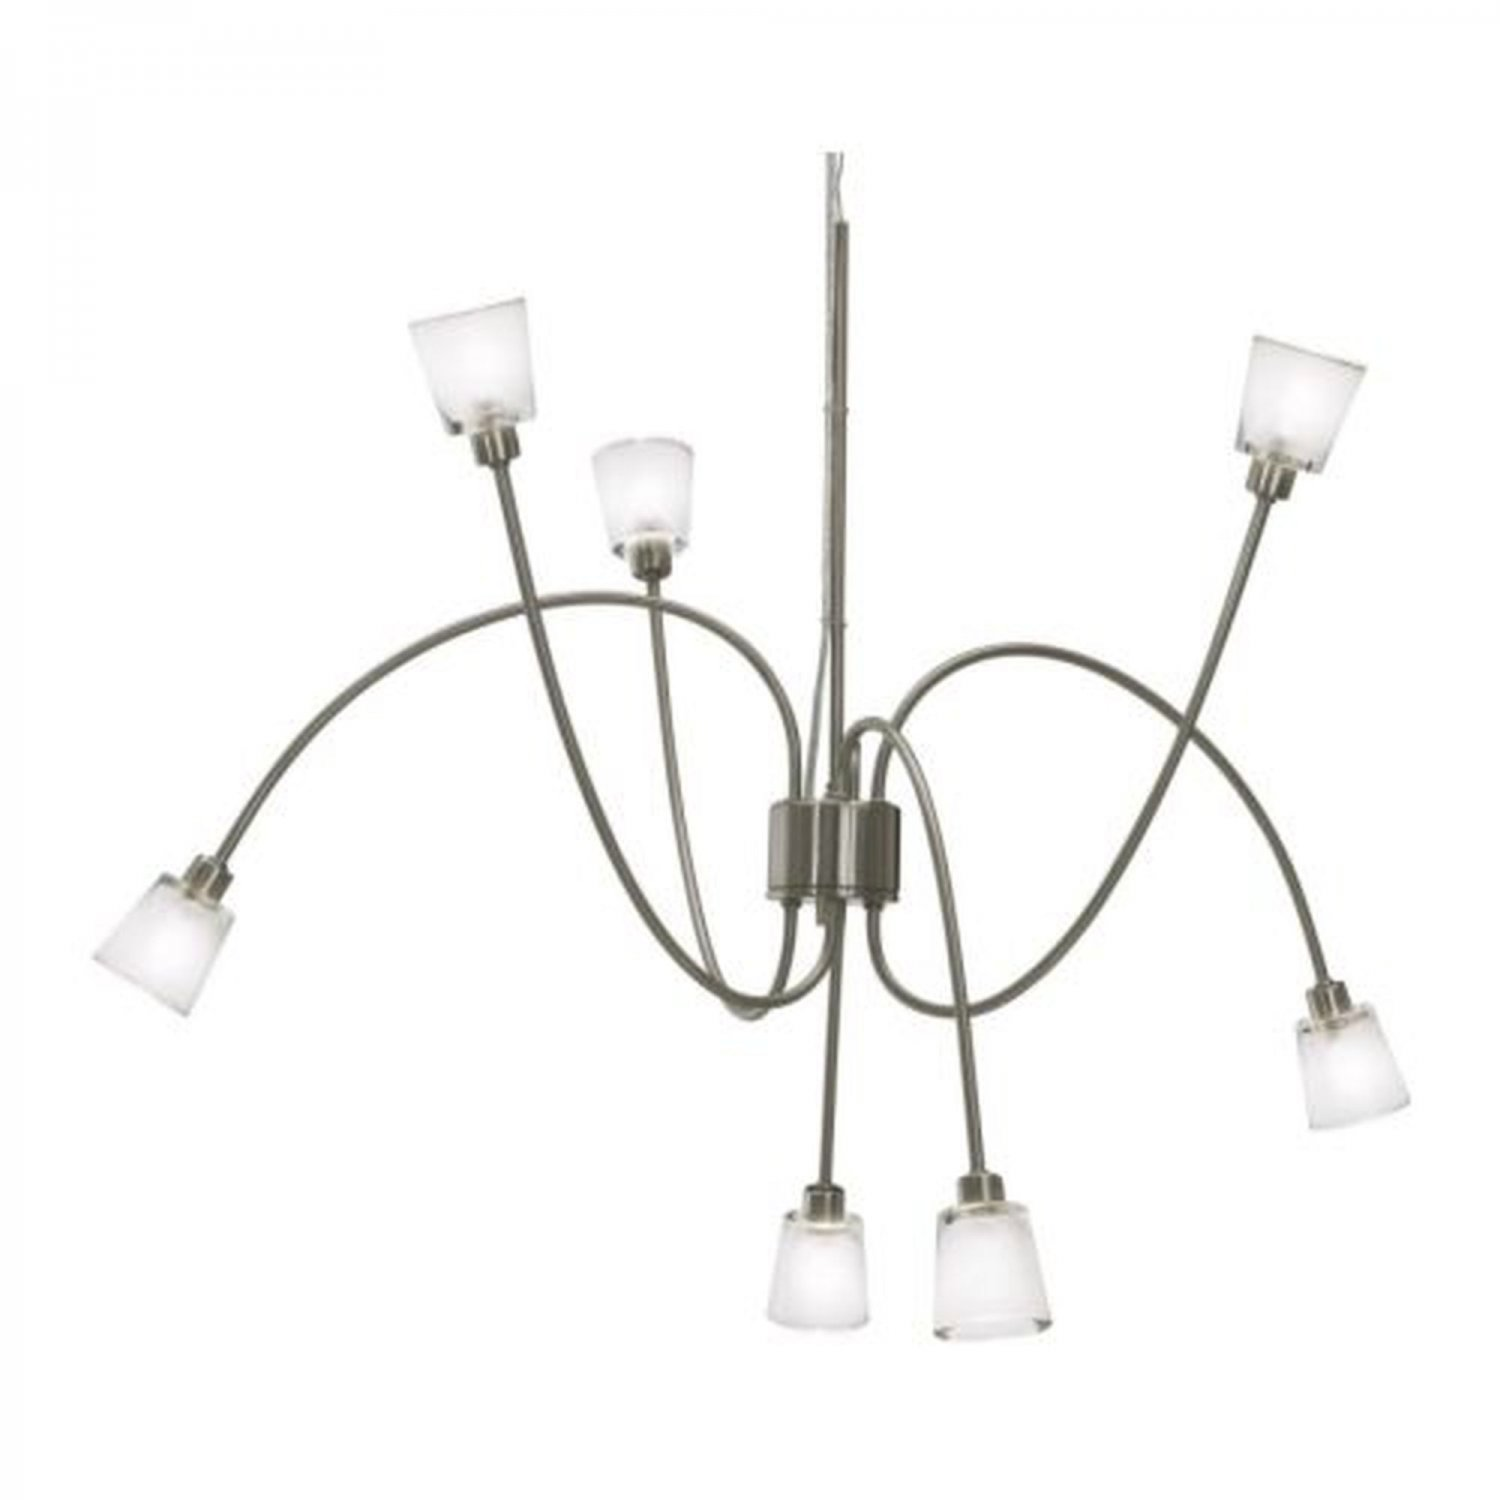 Ikea kryssbo chandelier light pendant lamp glass nickel steel adjustable 7 arm - Ikea suspension luminaire ...